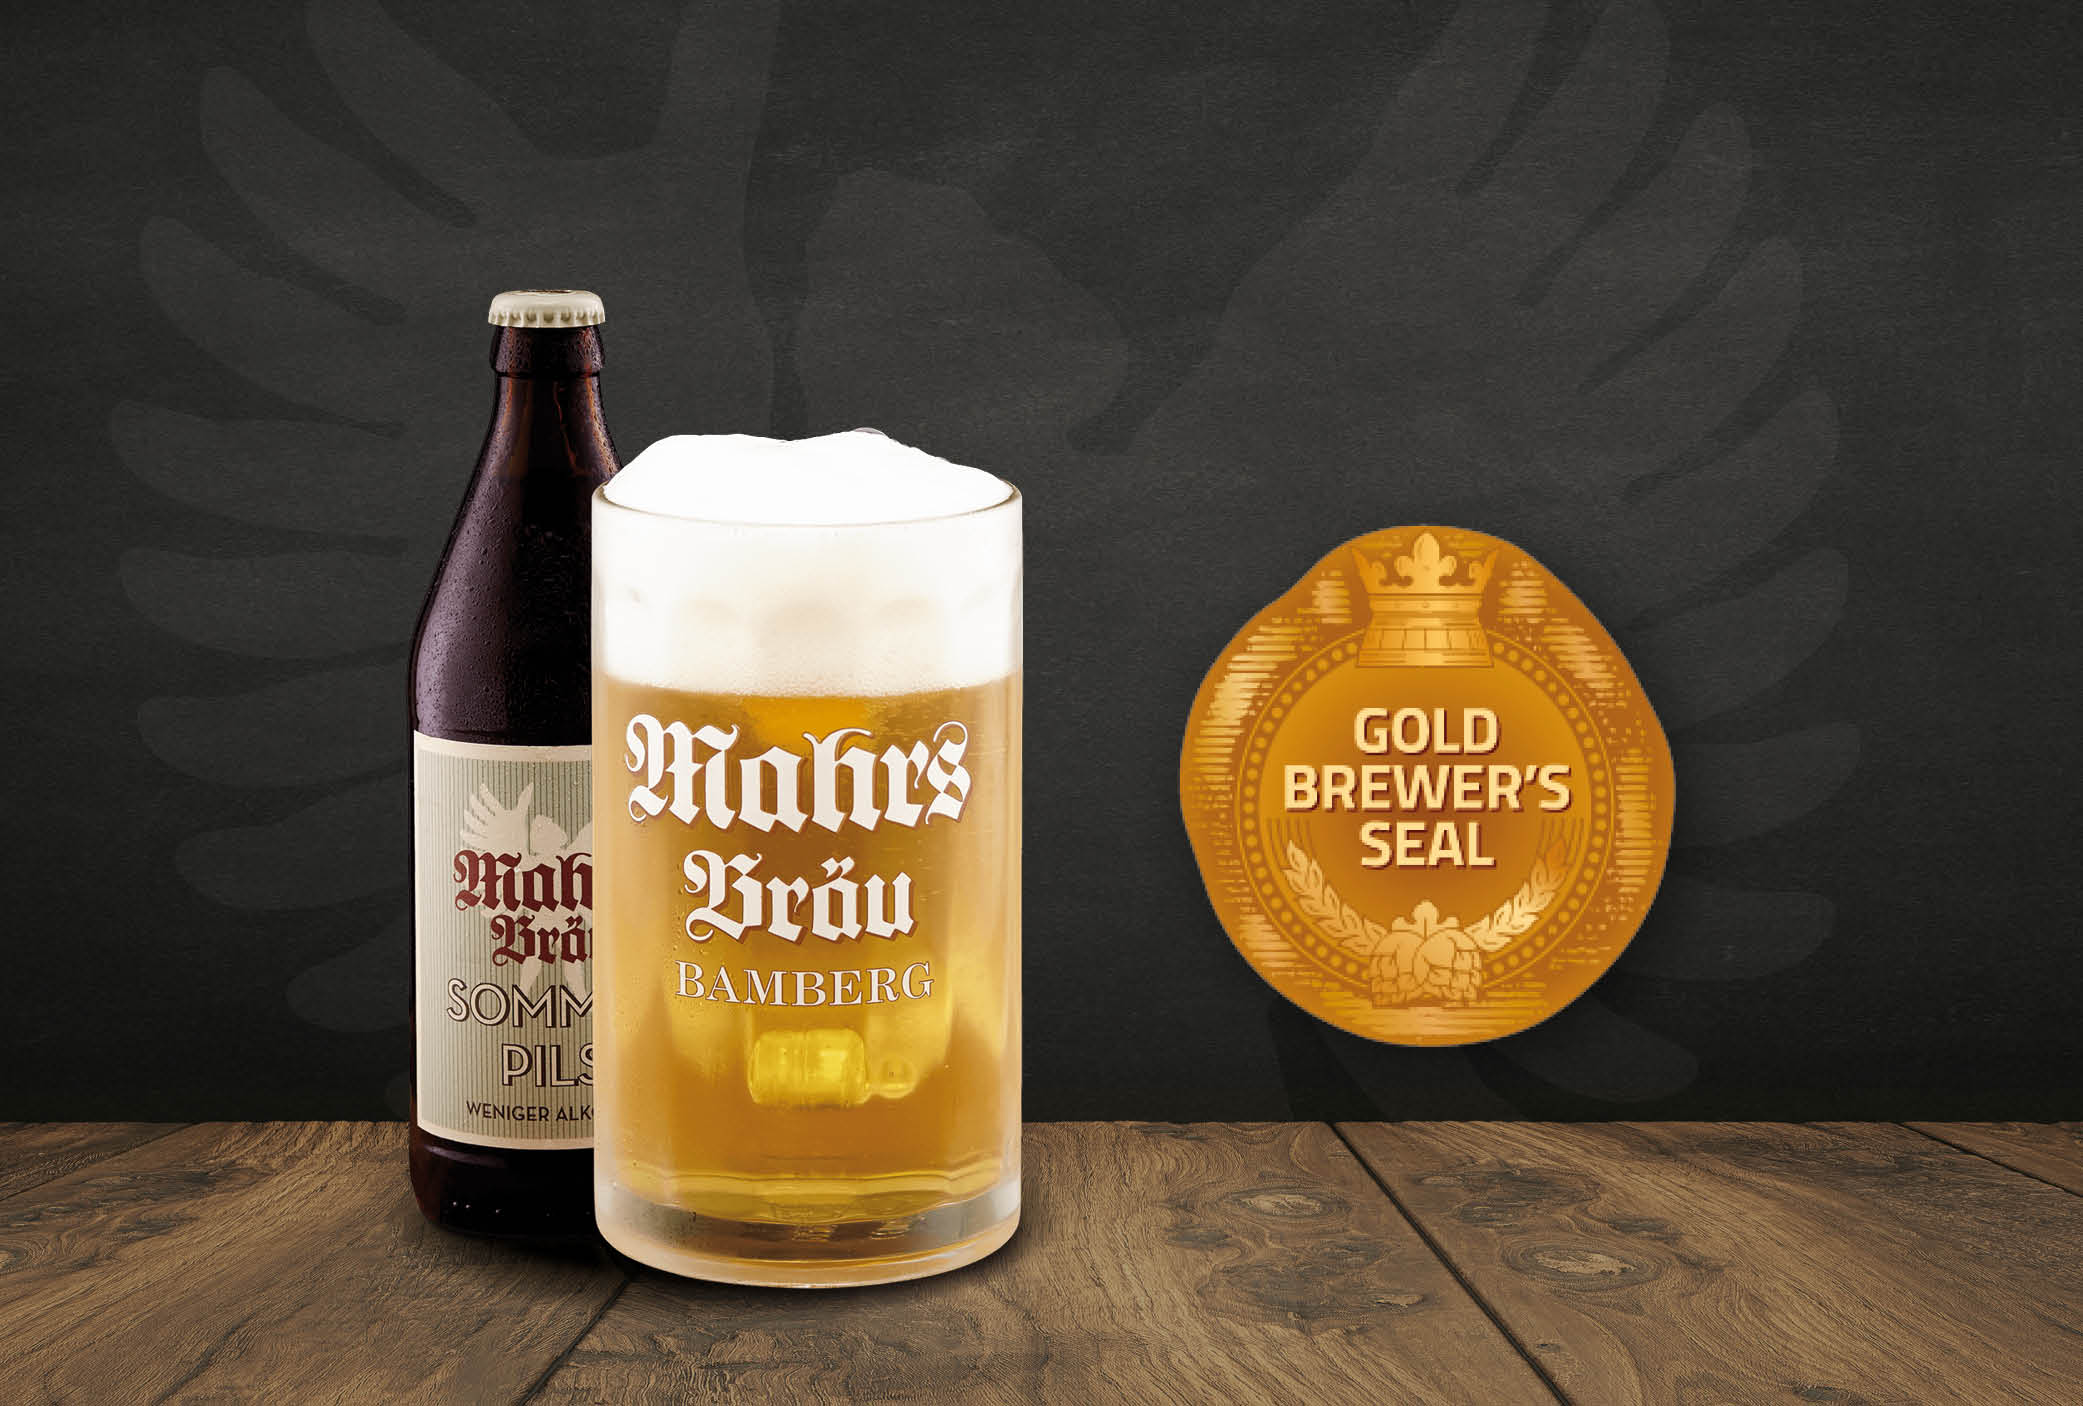 Gold for Mahr's Bräu Sommerpils